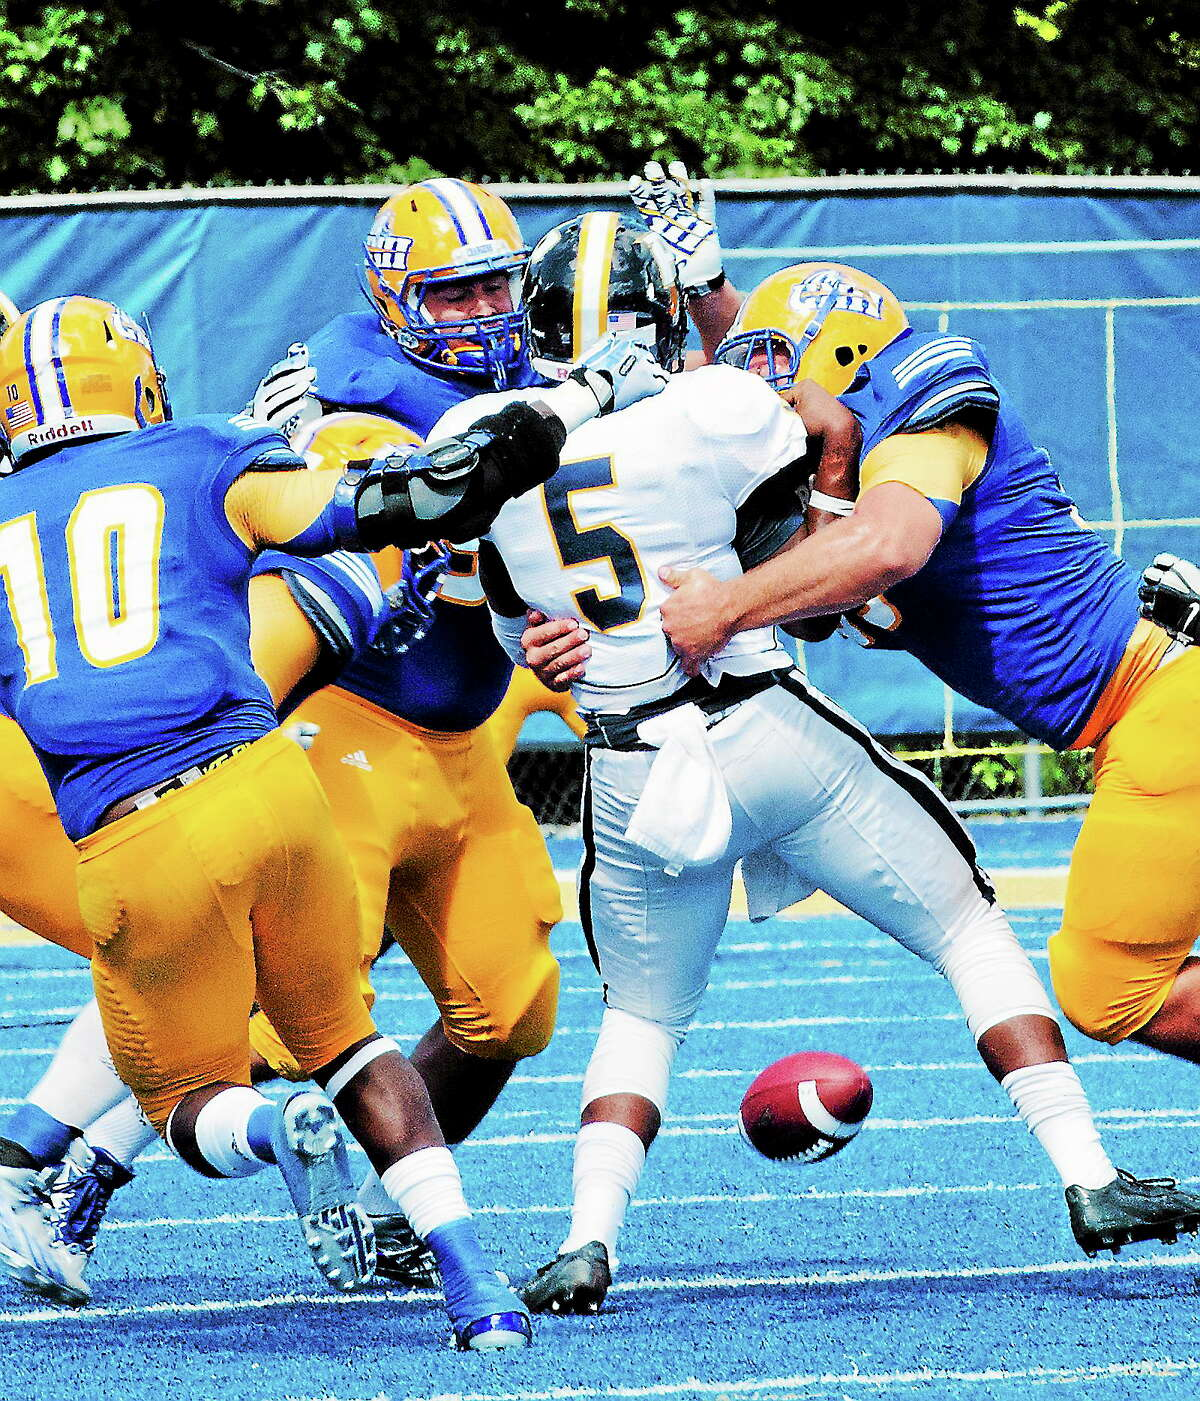 Pace quaterback Antwan Washington loses the ball as he is swarmed by the New Haven defense in the second quarter Saturday.